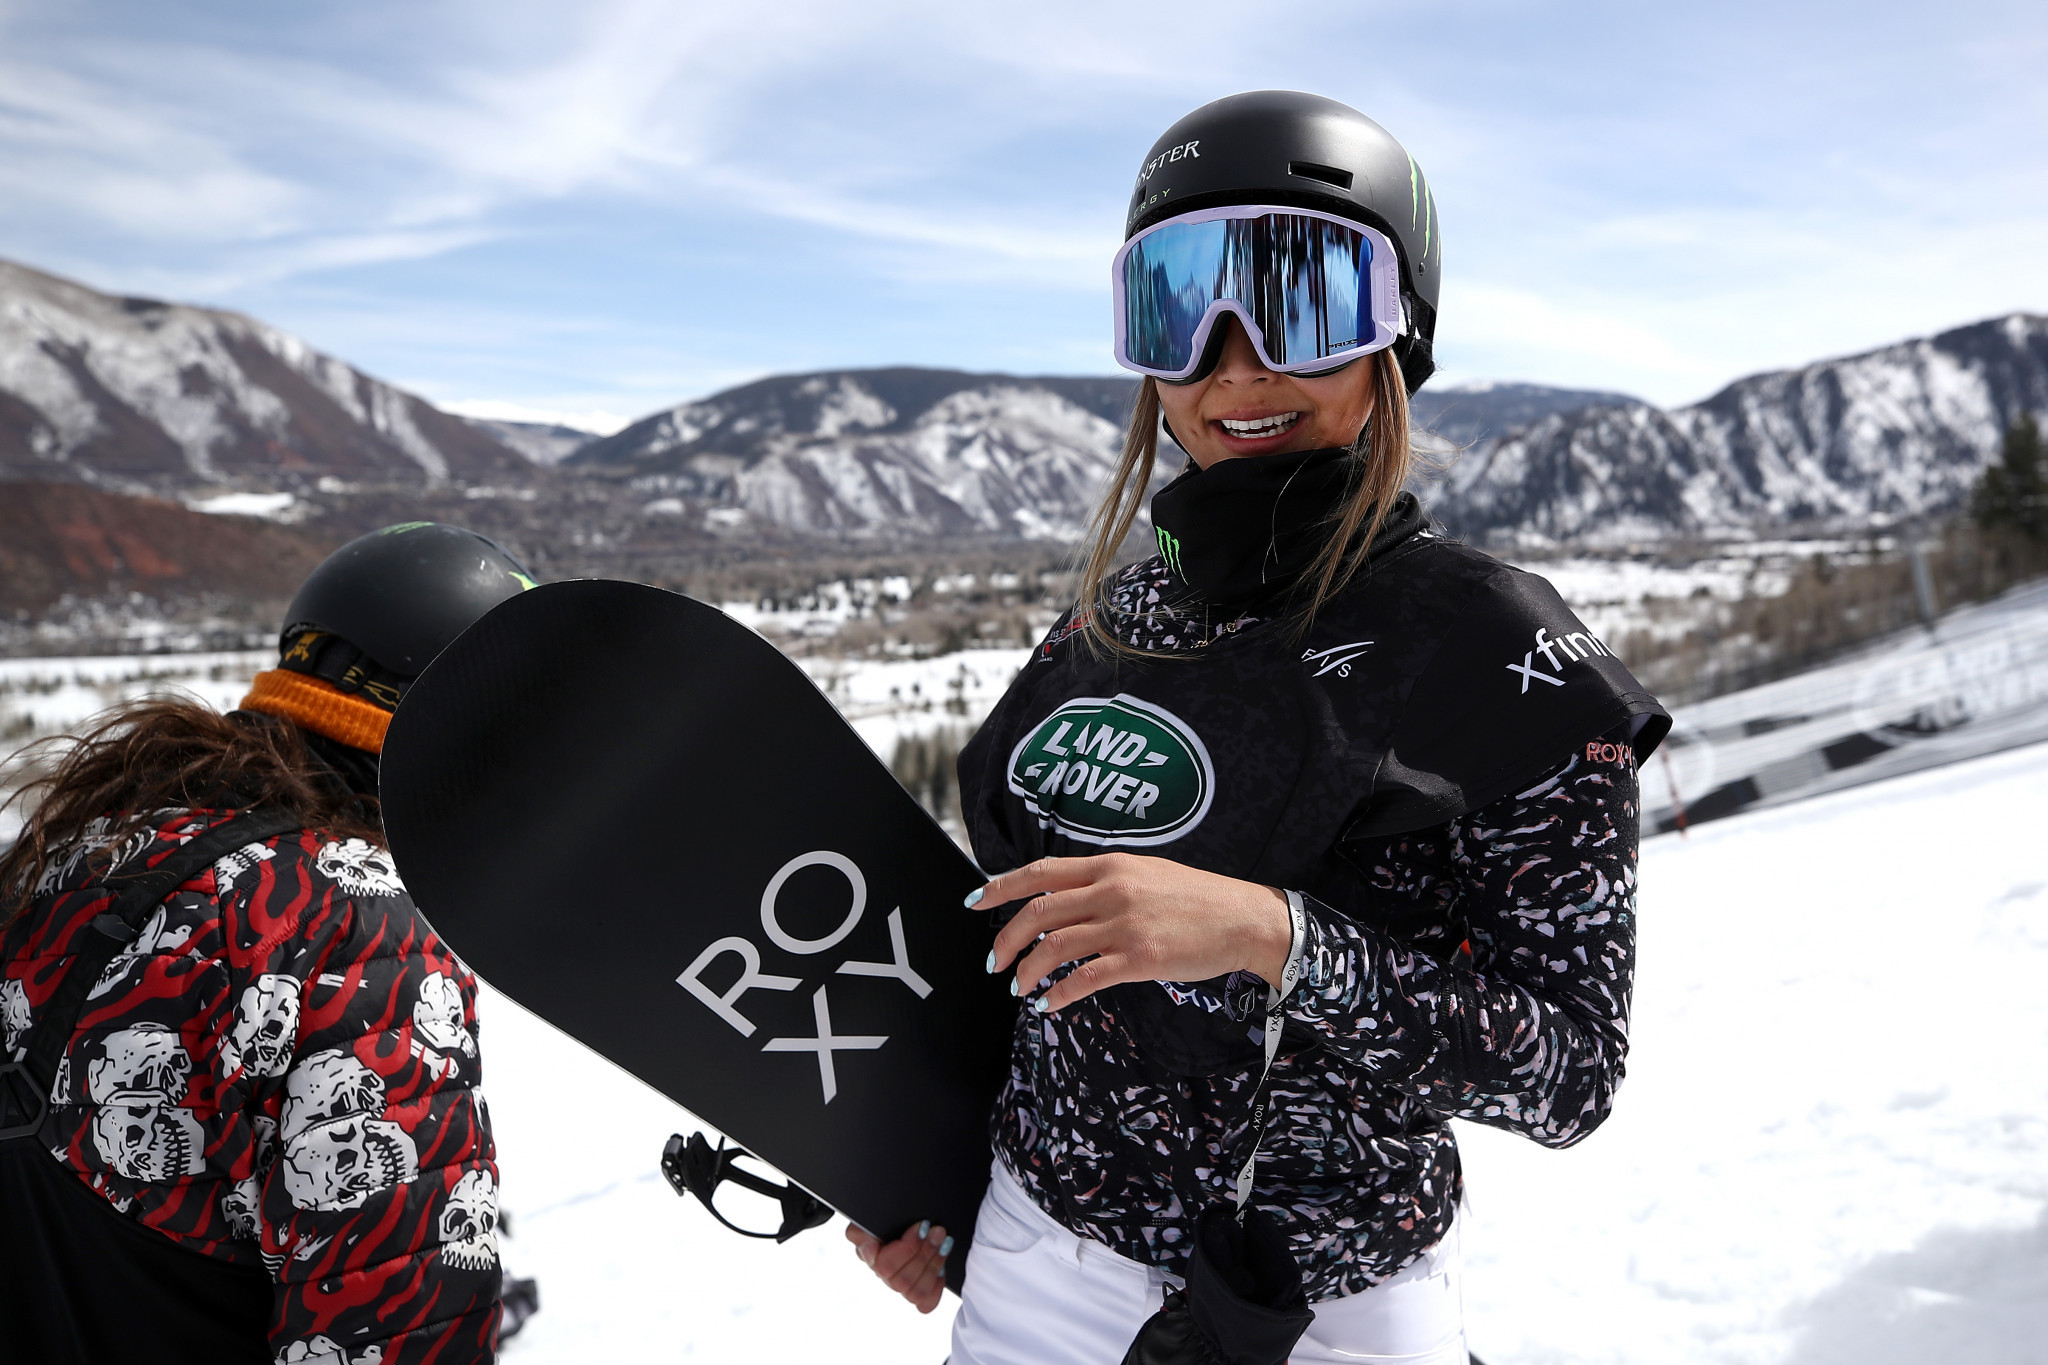 Olympic champion Kim top qualifier in women's halfpipe at FIS Snowboard and Freeski World Championships